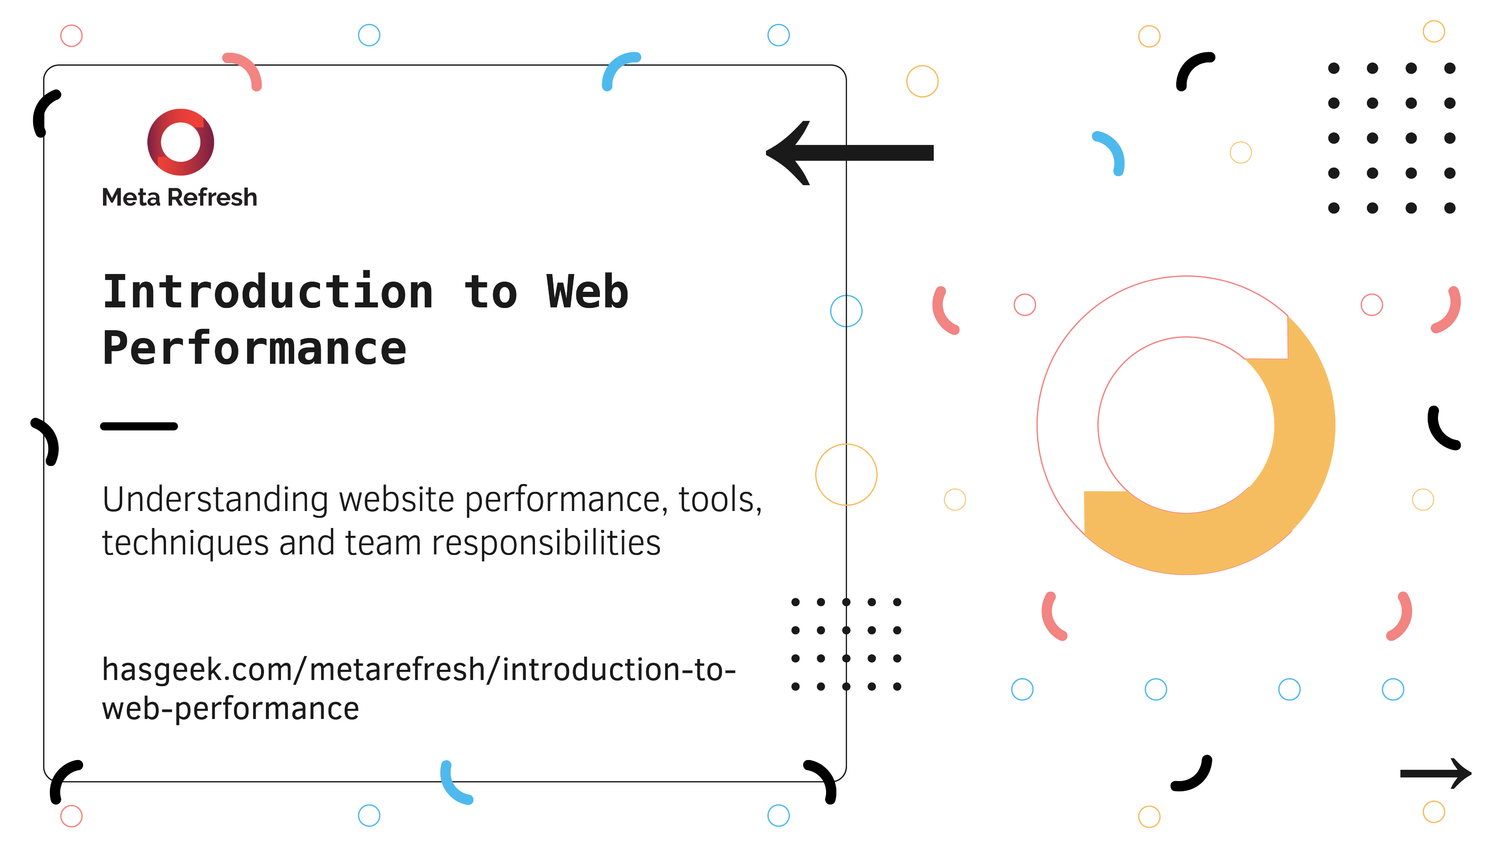 Introduction to Web Performance